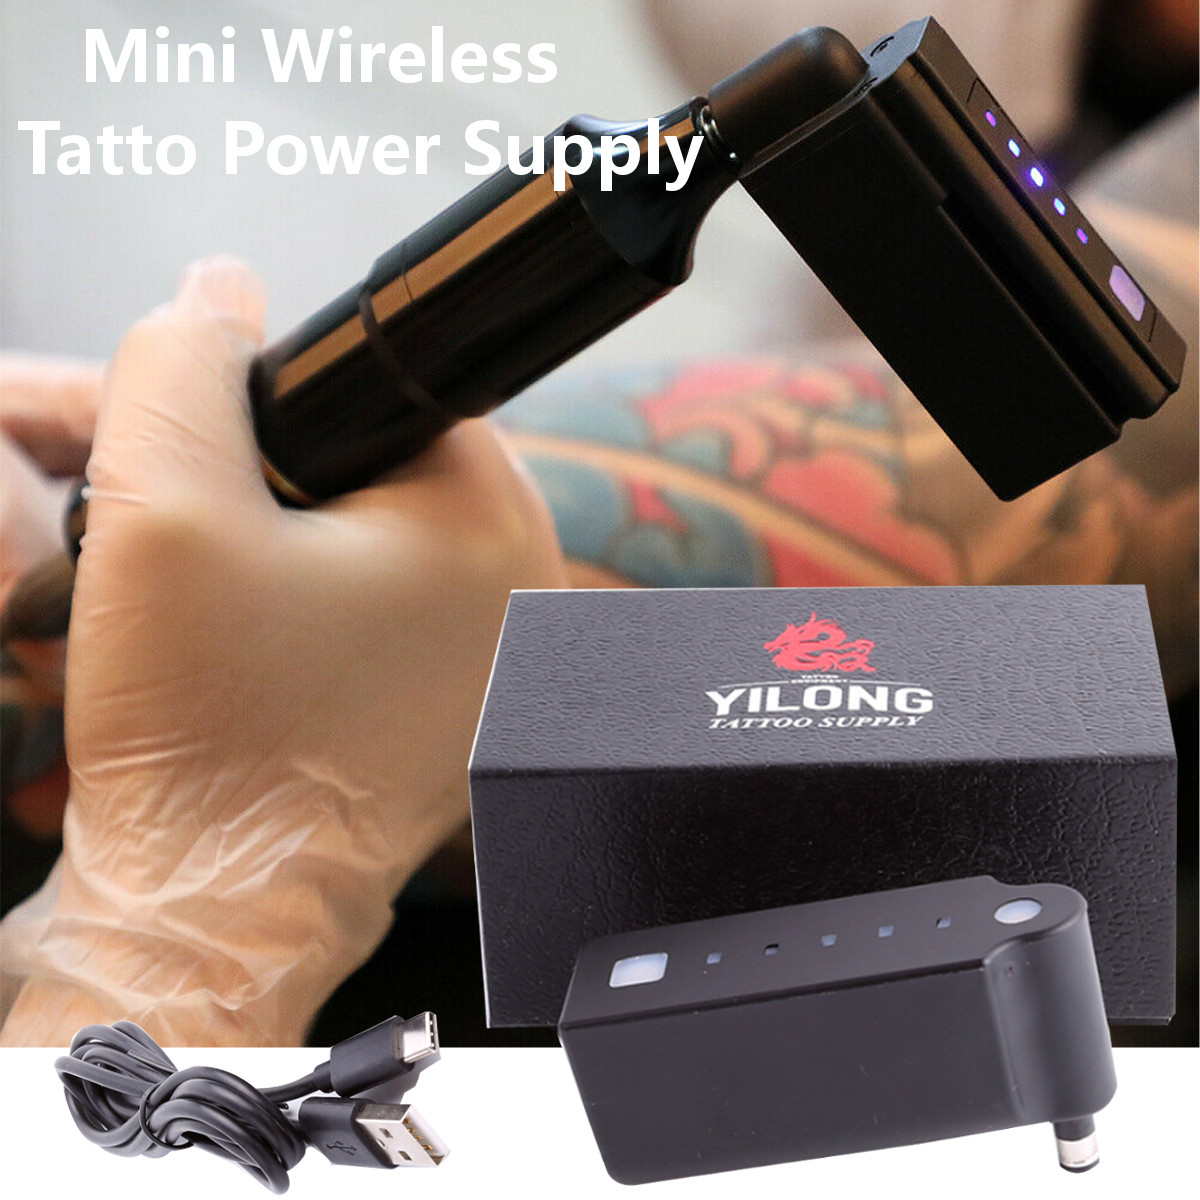 New Wireless Mini Tattoo Power Supply 2000mA RCA DC Connection Available Tattooing Permanent Makeup Equipment